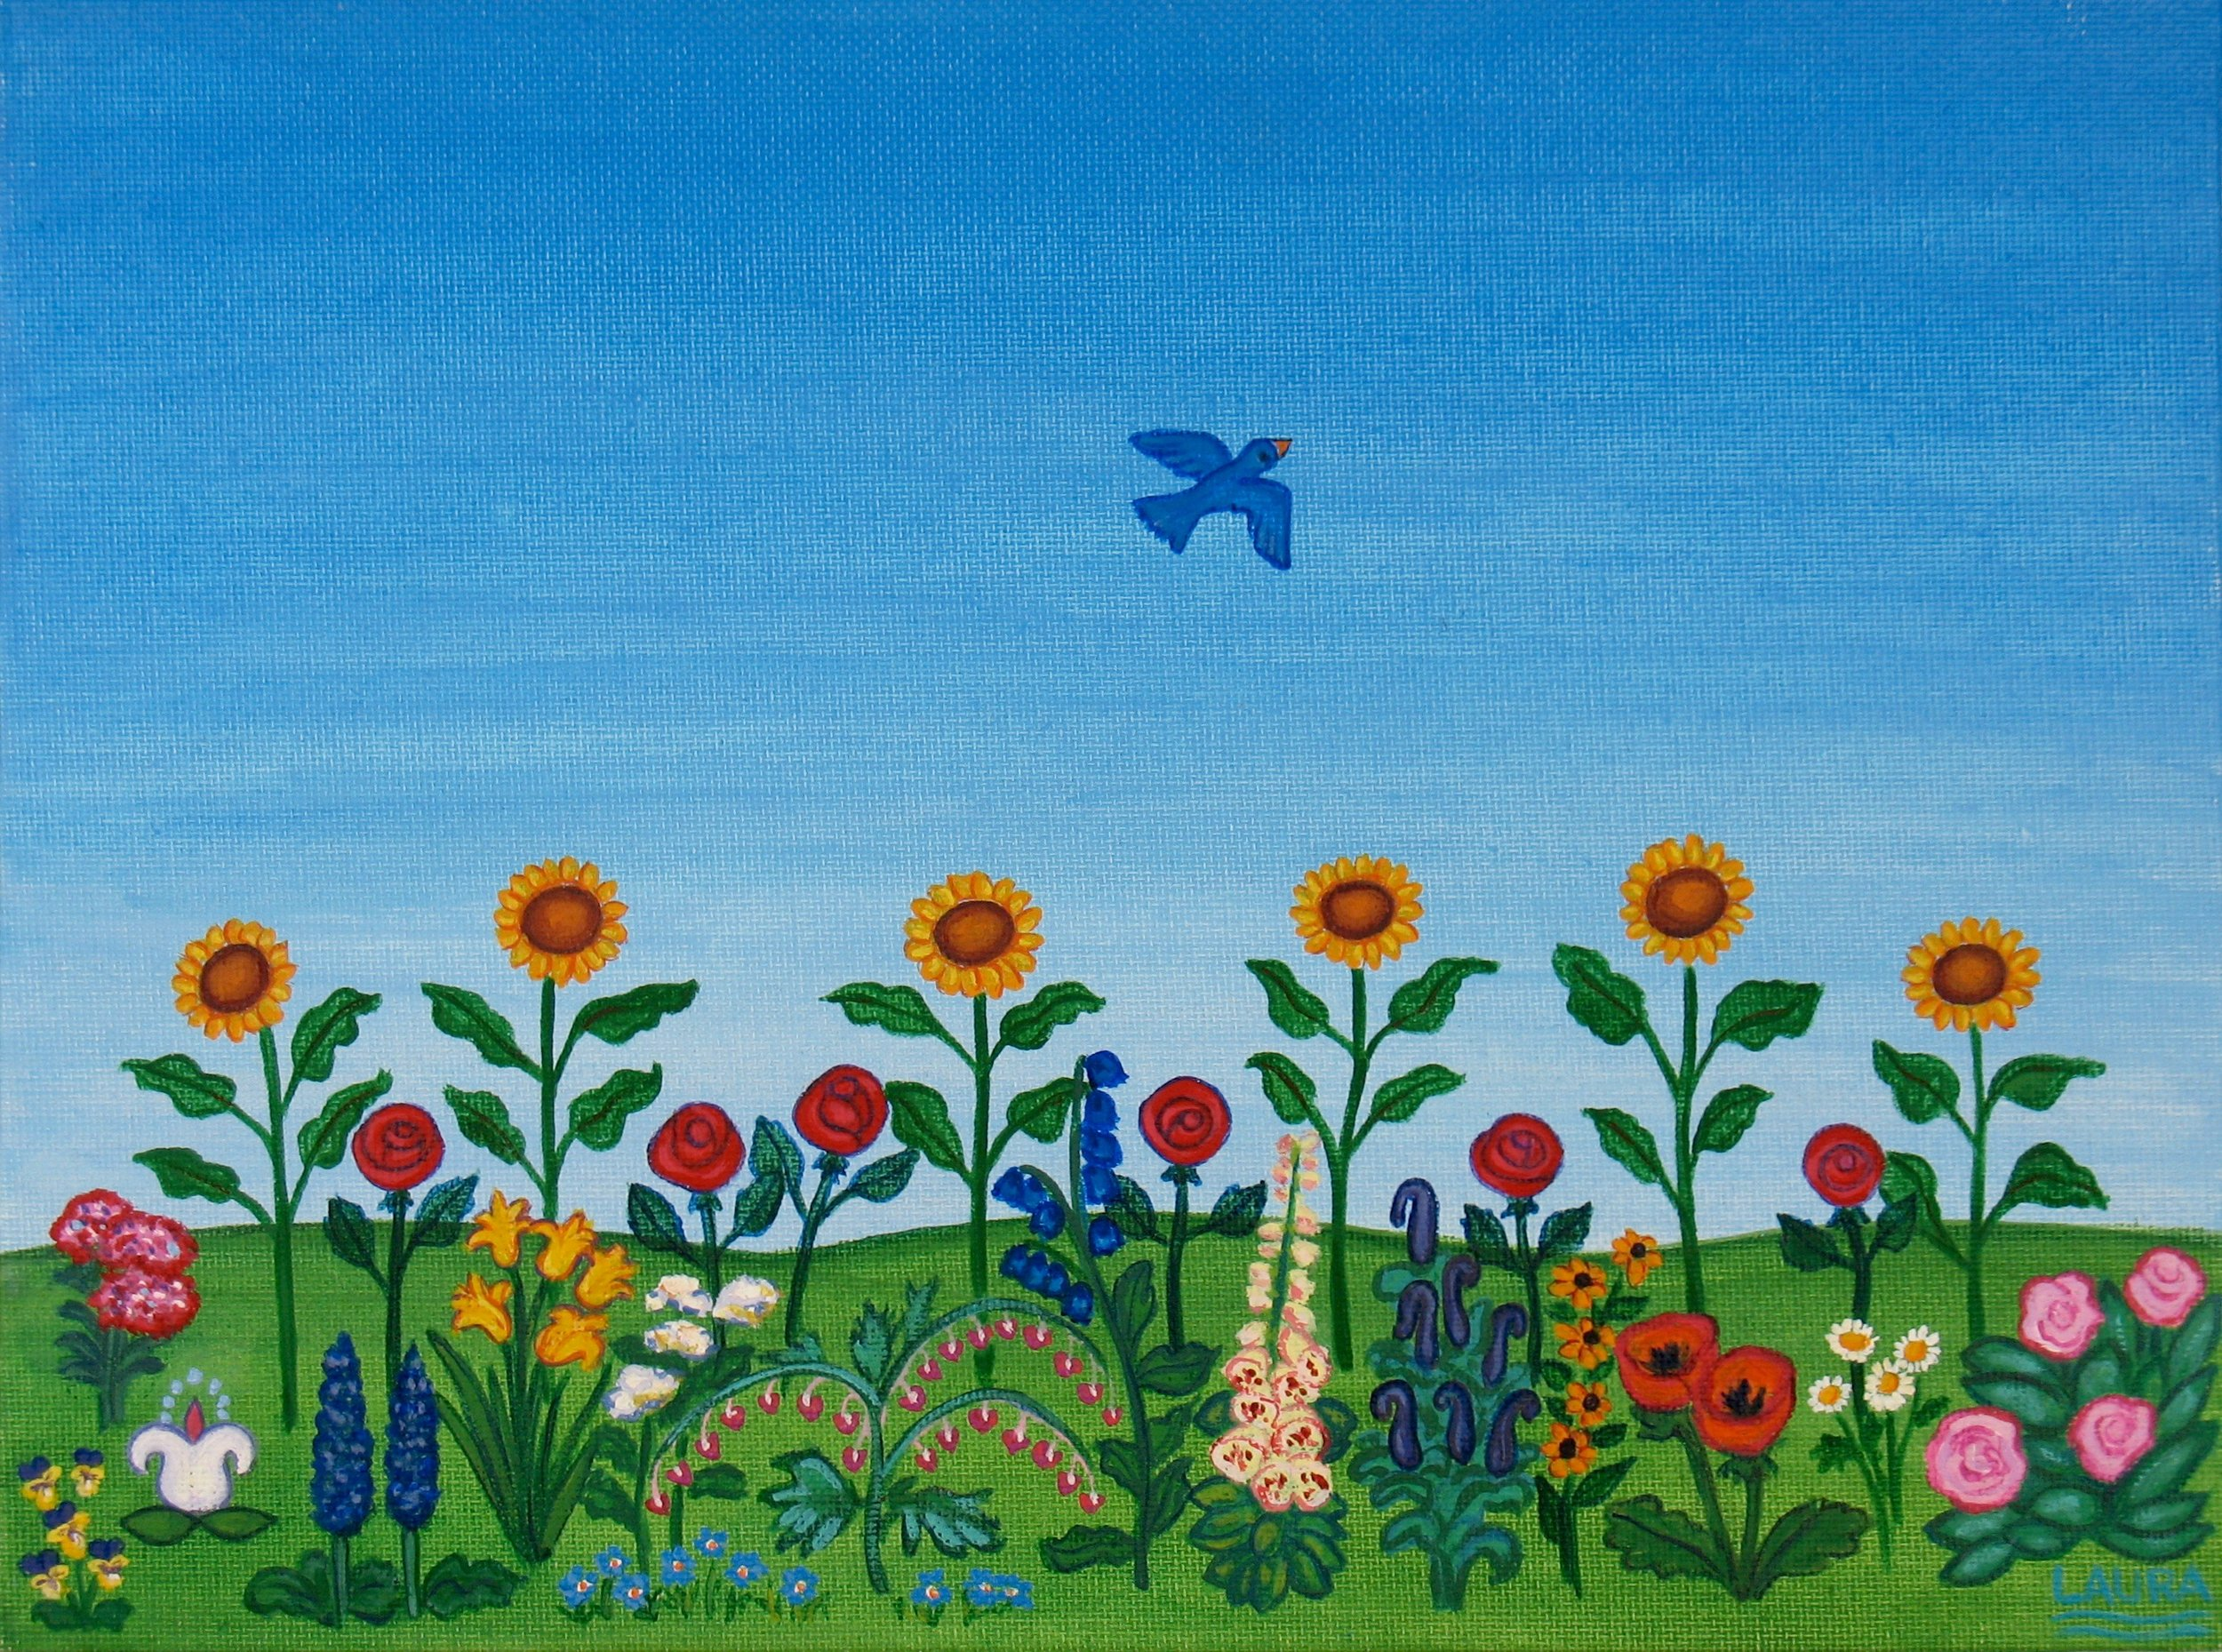 """Garden of Well-being"", acrylic on canvas inspired by a cancer patient's story."